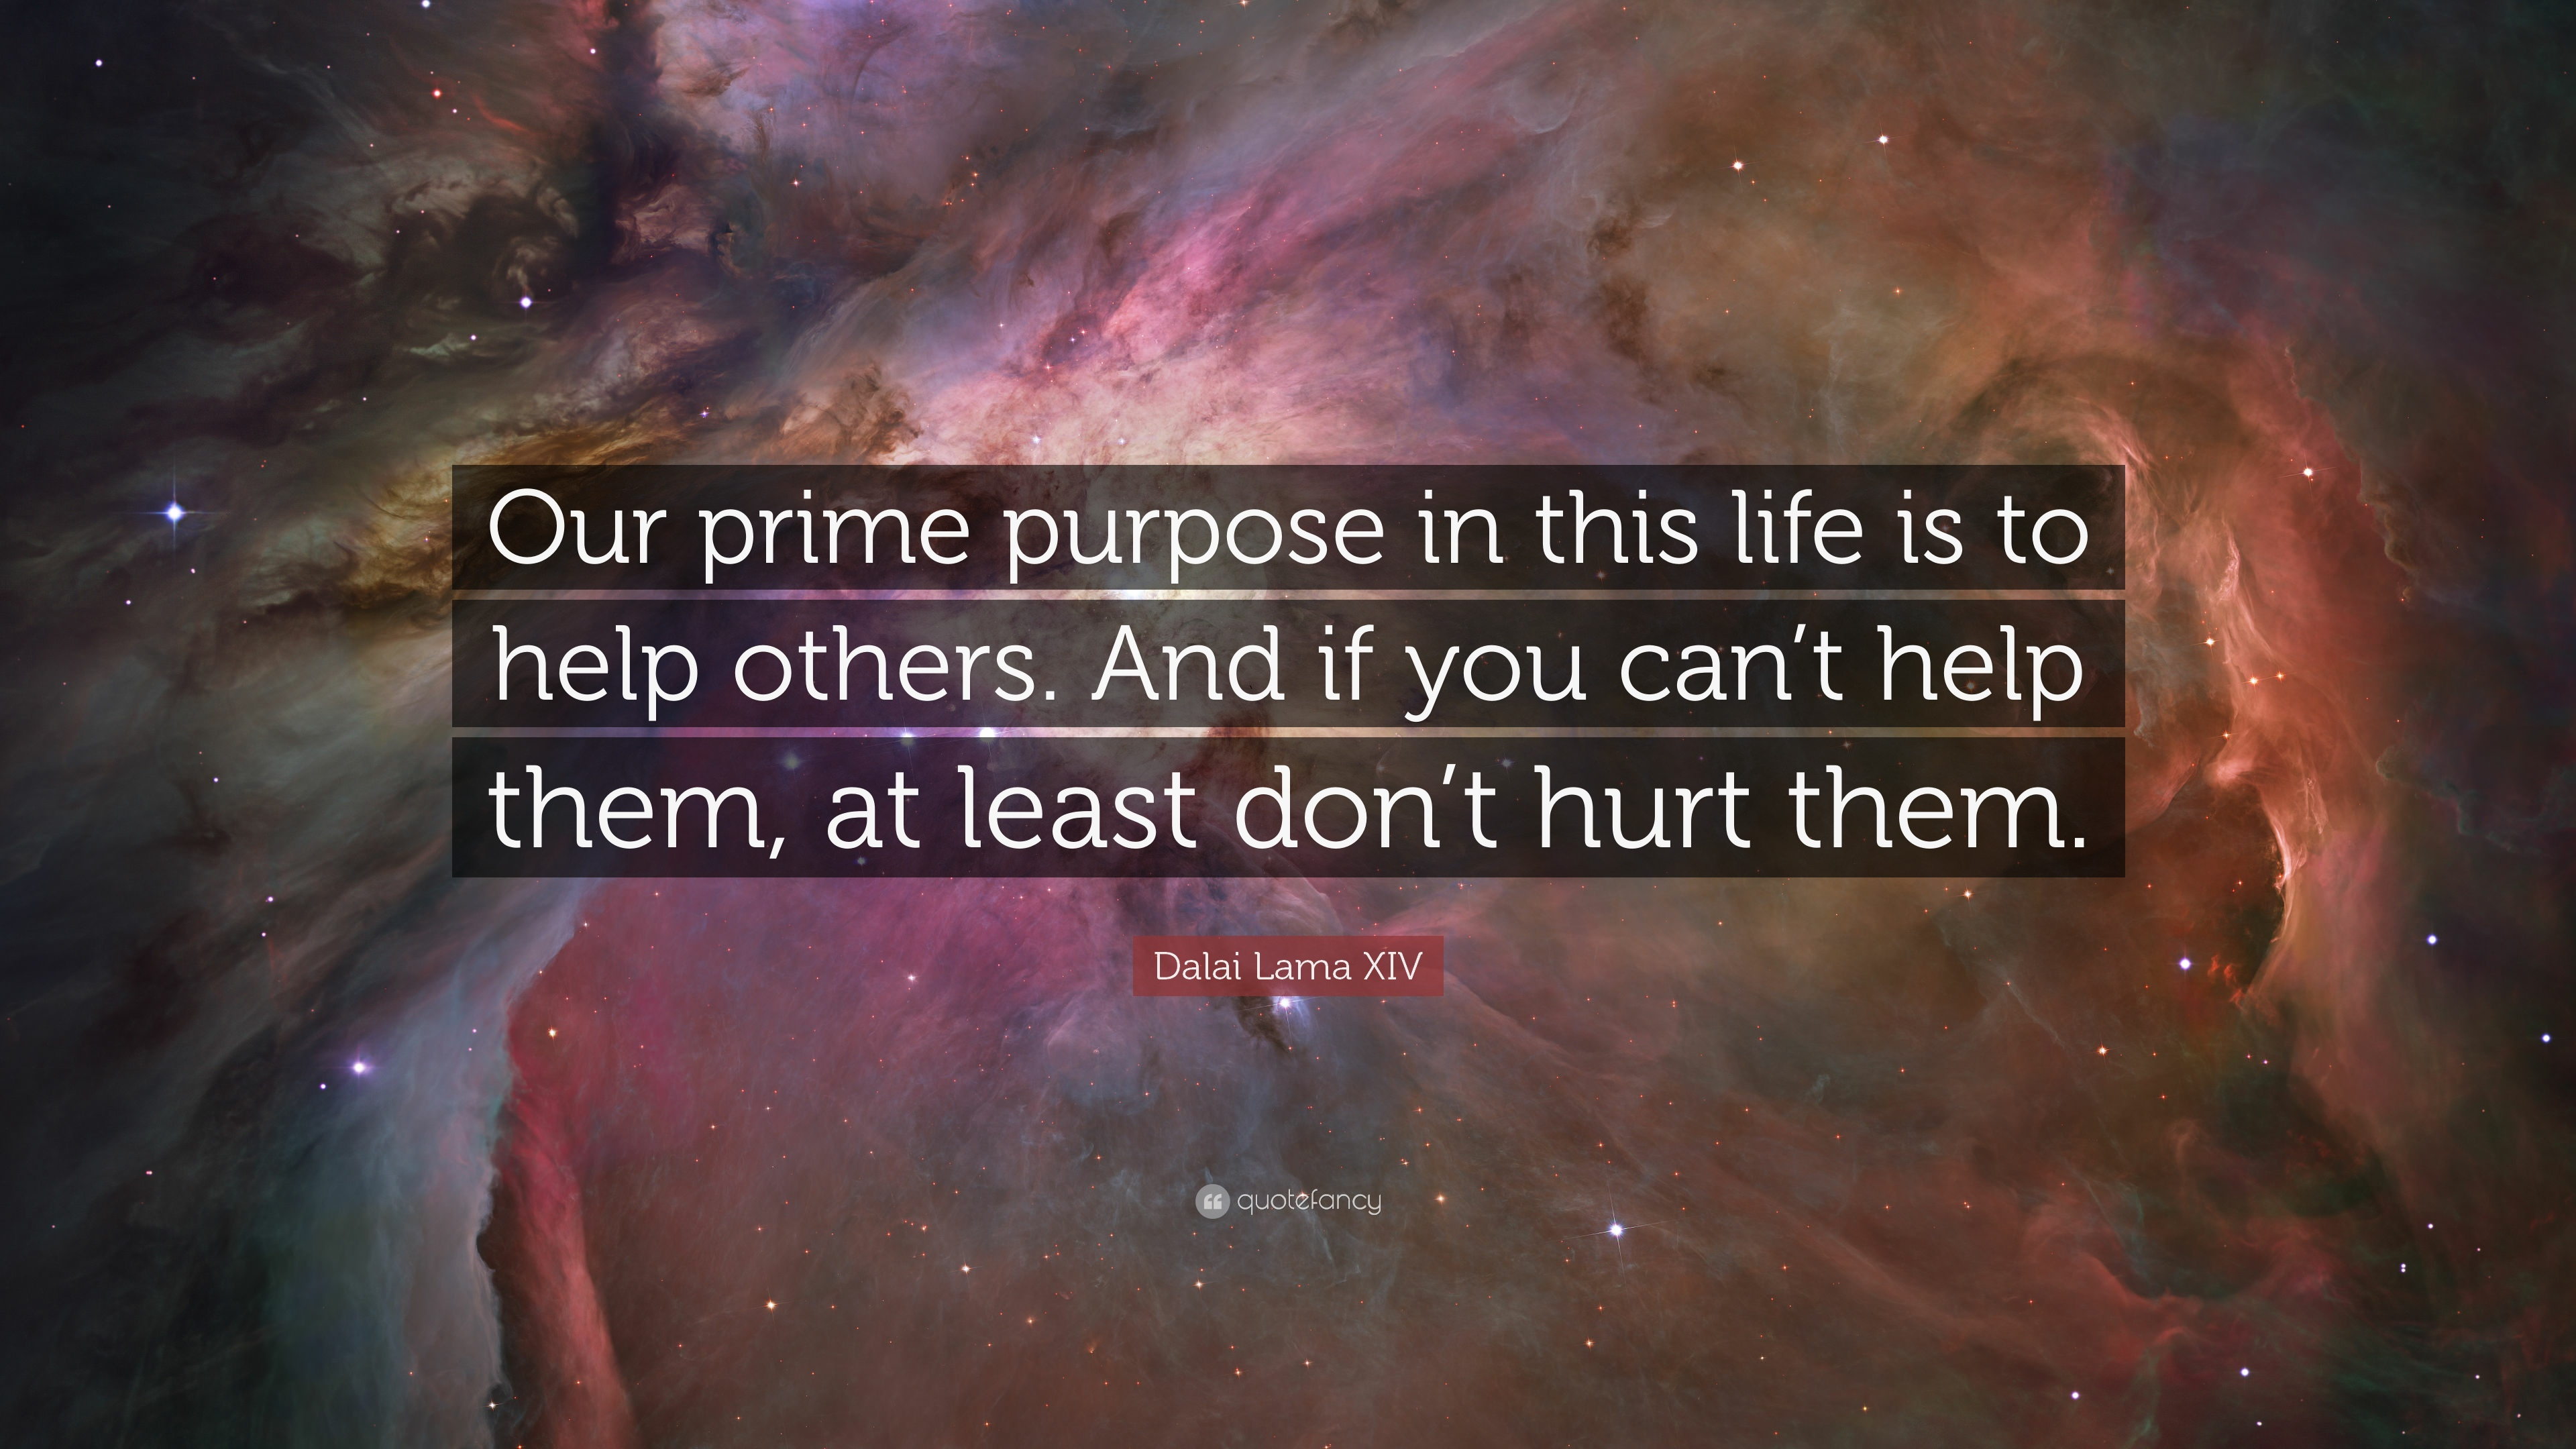 help others the purpose of life quotes on helping others help others the purpose of life quotes on helping others help